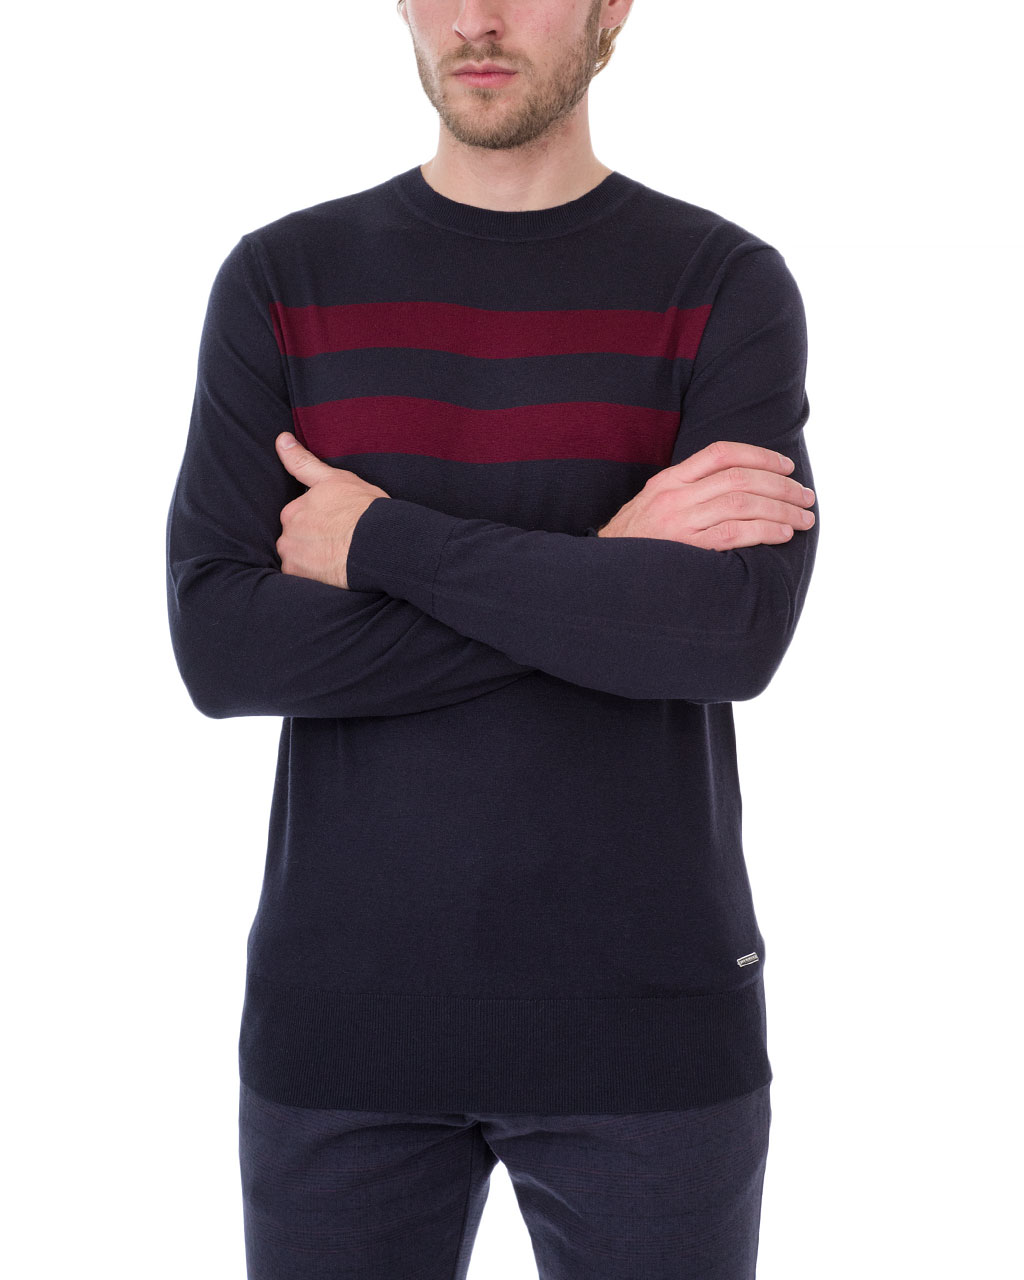 Men's jumper 1860-319/19-20 (5)